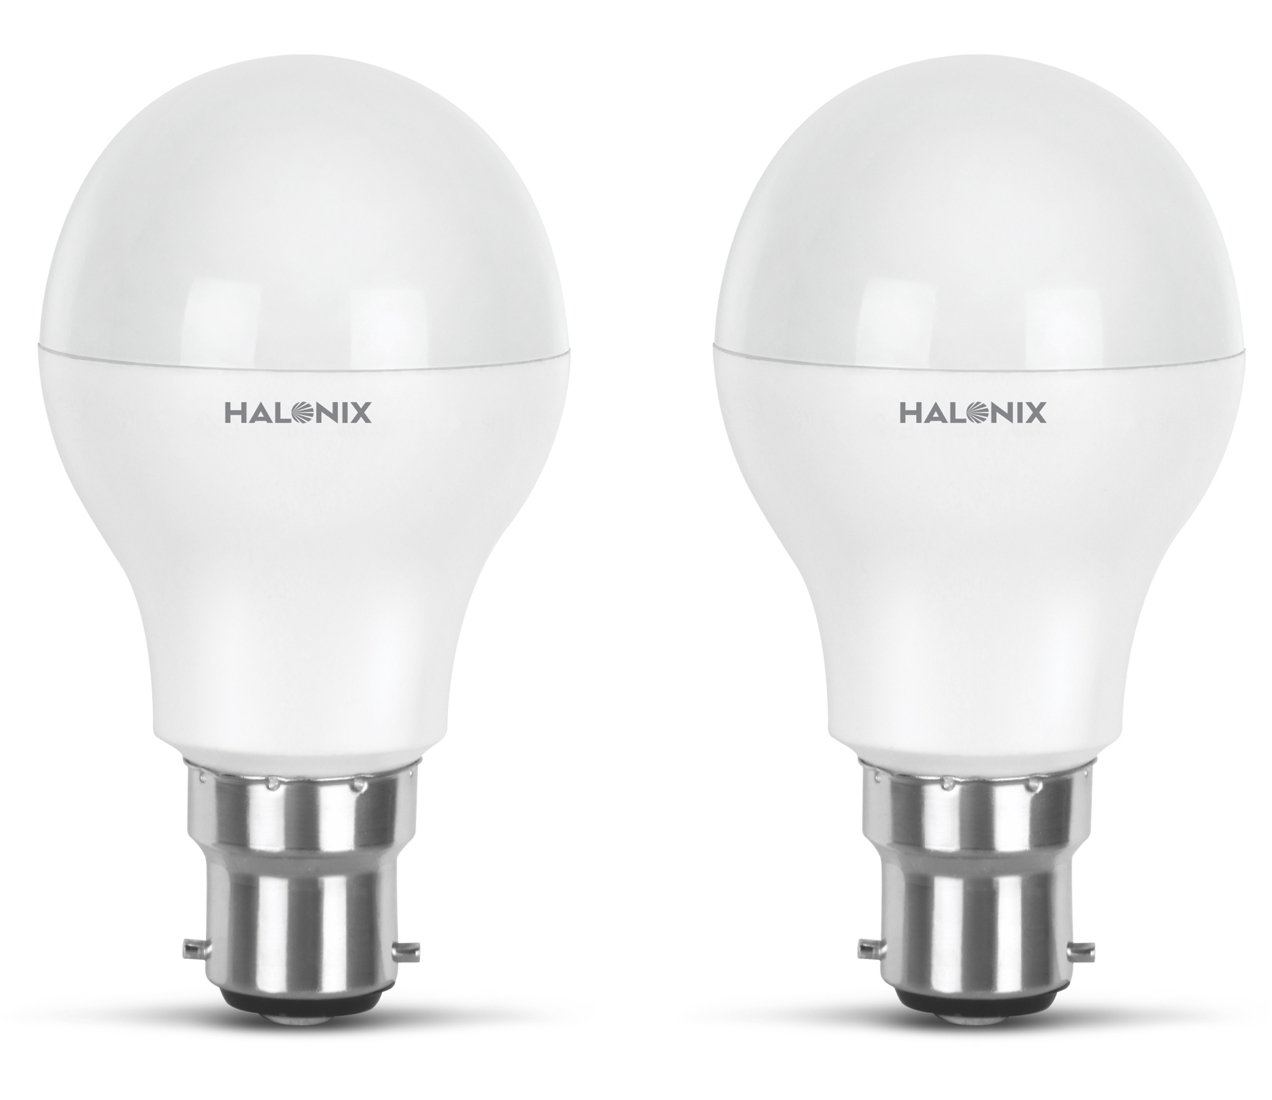 Amazon: Halonix Photon Plus Base B22 7-Watt LED Bulb (Pack of 2) @ Rs.169/-